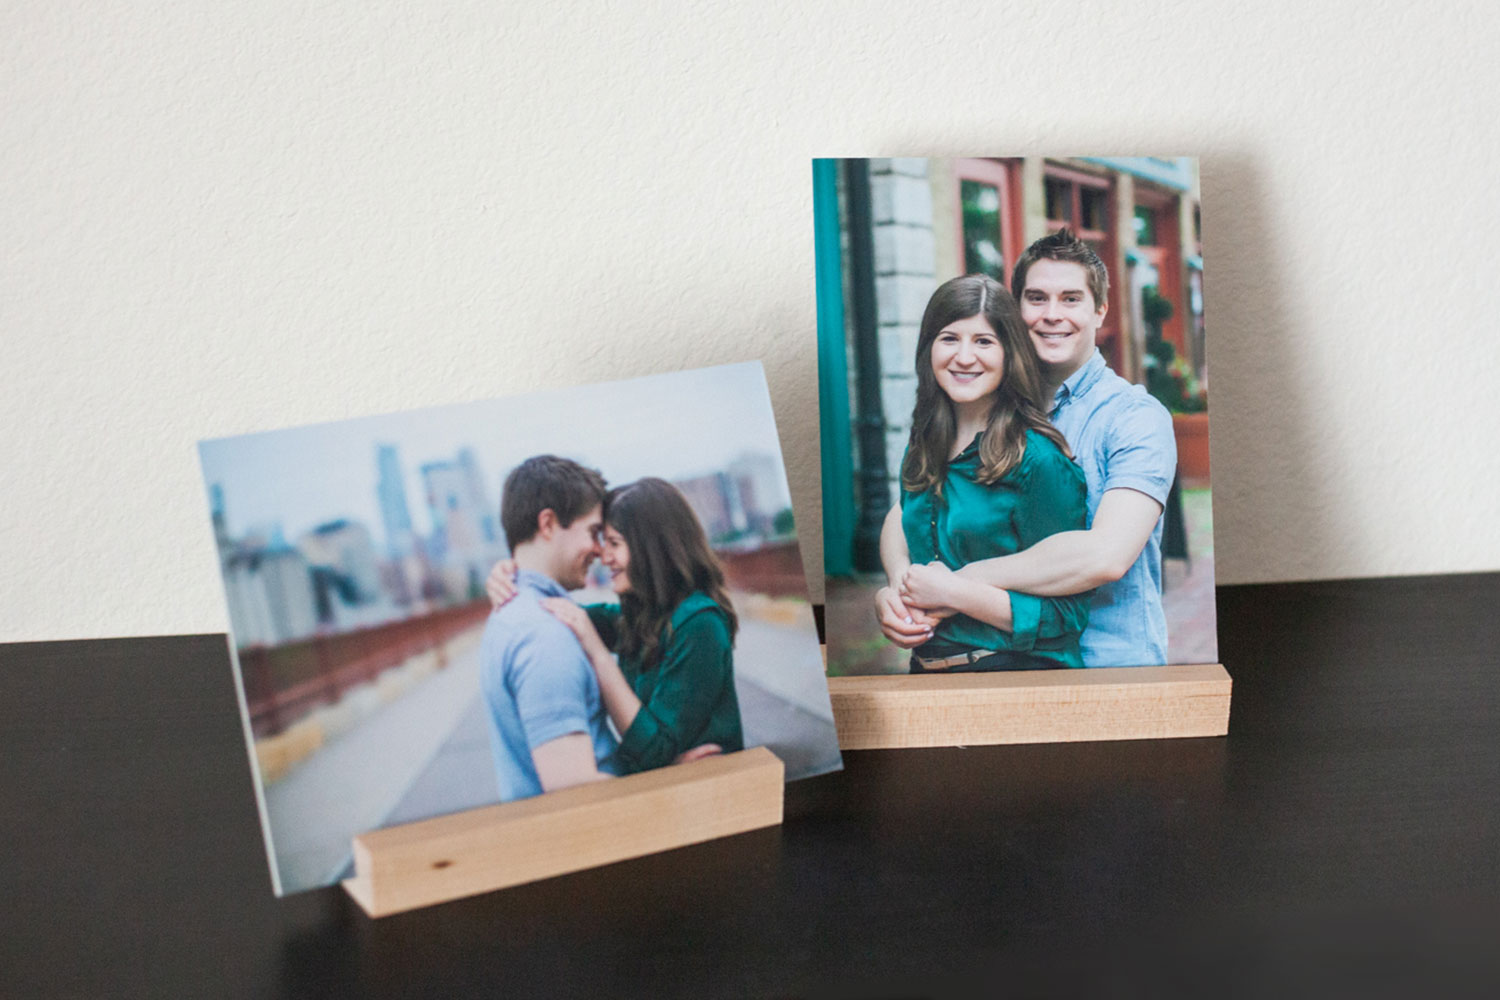 Mounted photographic prints from an engagement session by Laura Leigh Images